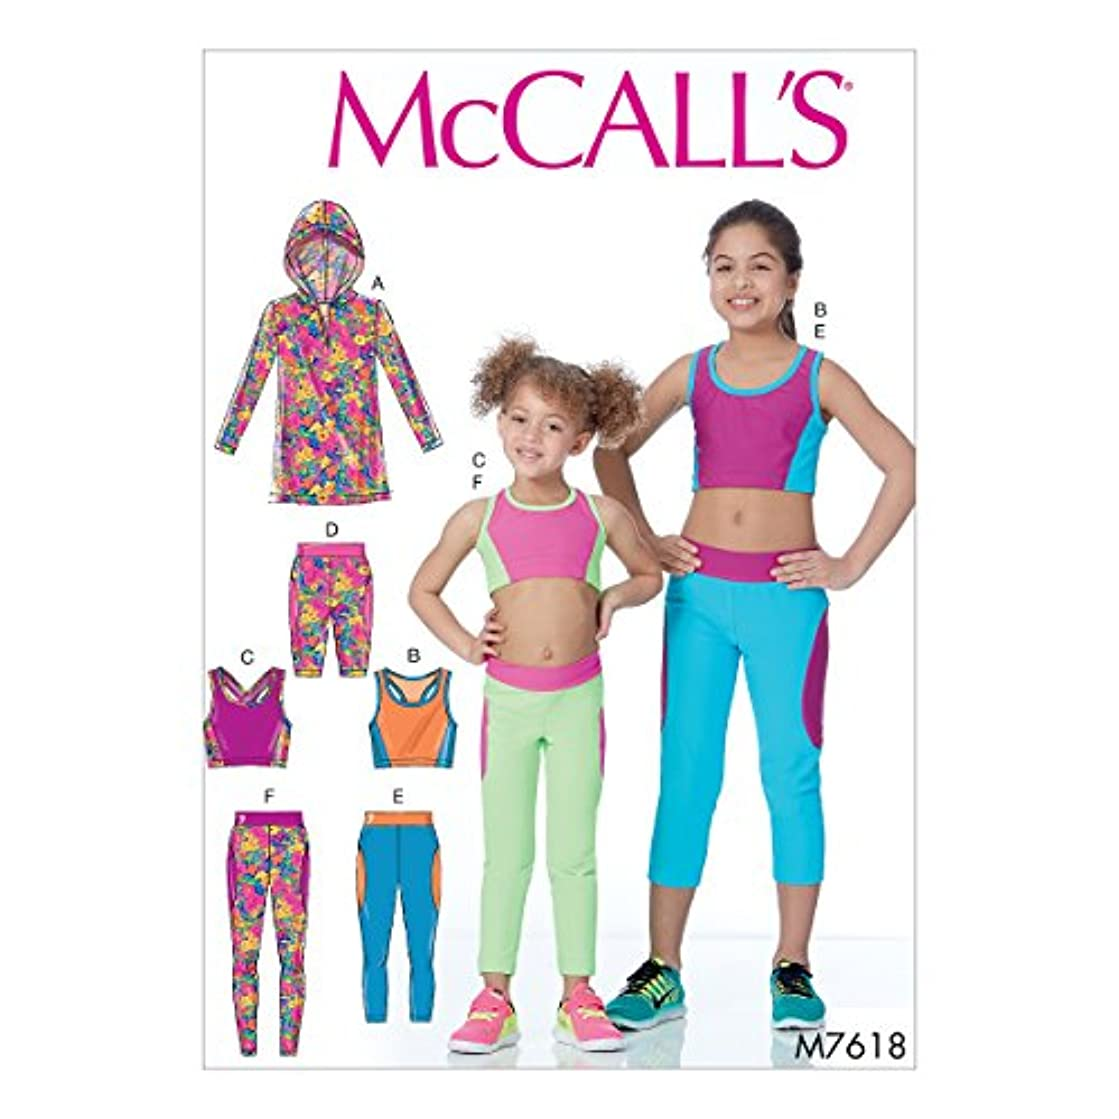 McCall's Patterns M7618CCE Children's/Girls' Activewear Tops and Leggings Sewing Pattern, CCE (3-4-5-6)